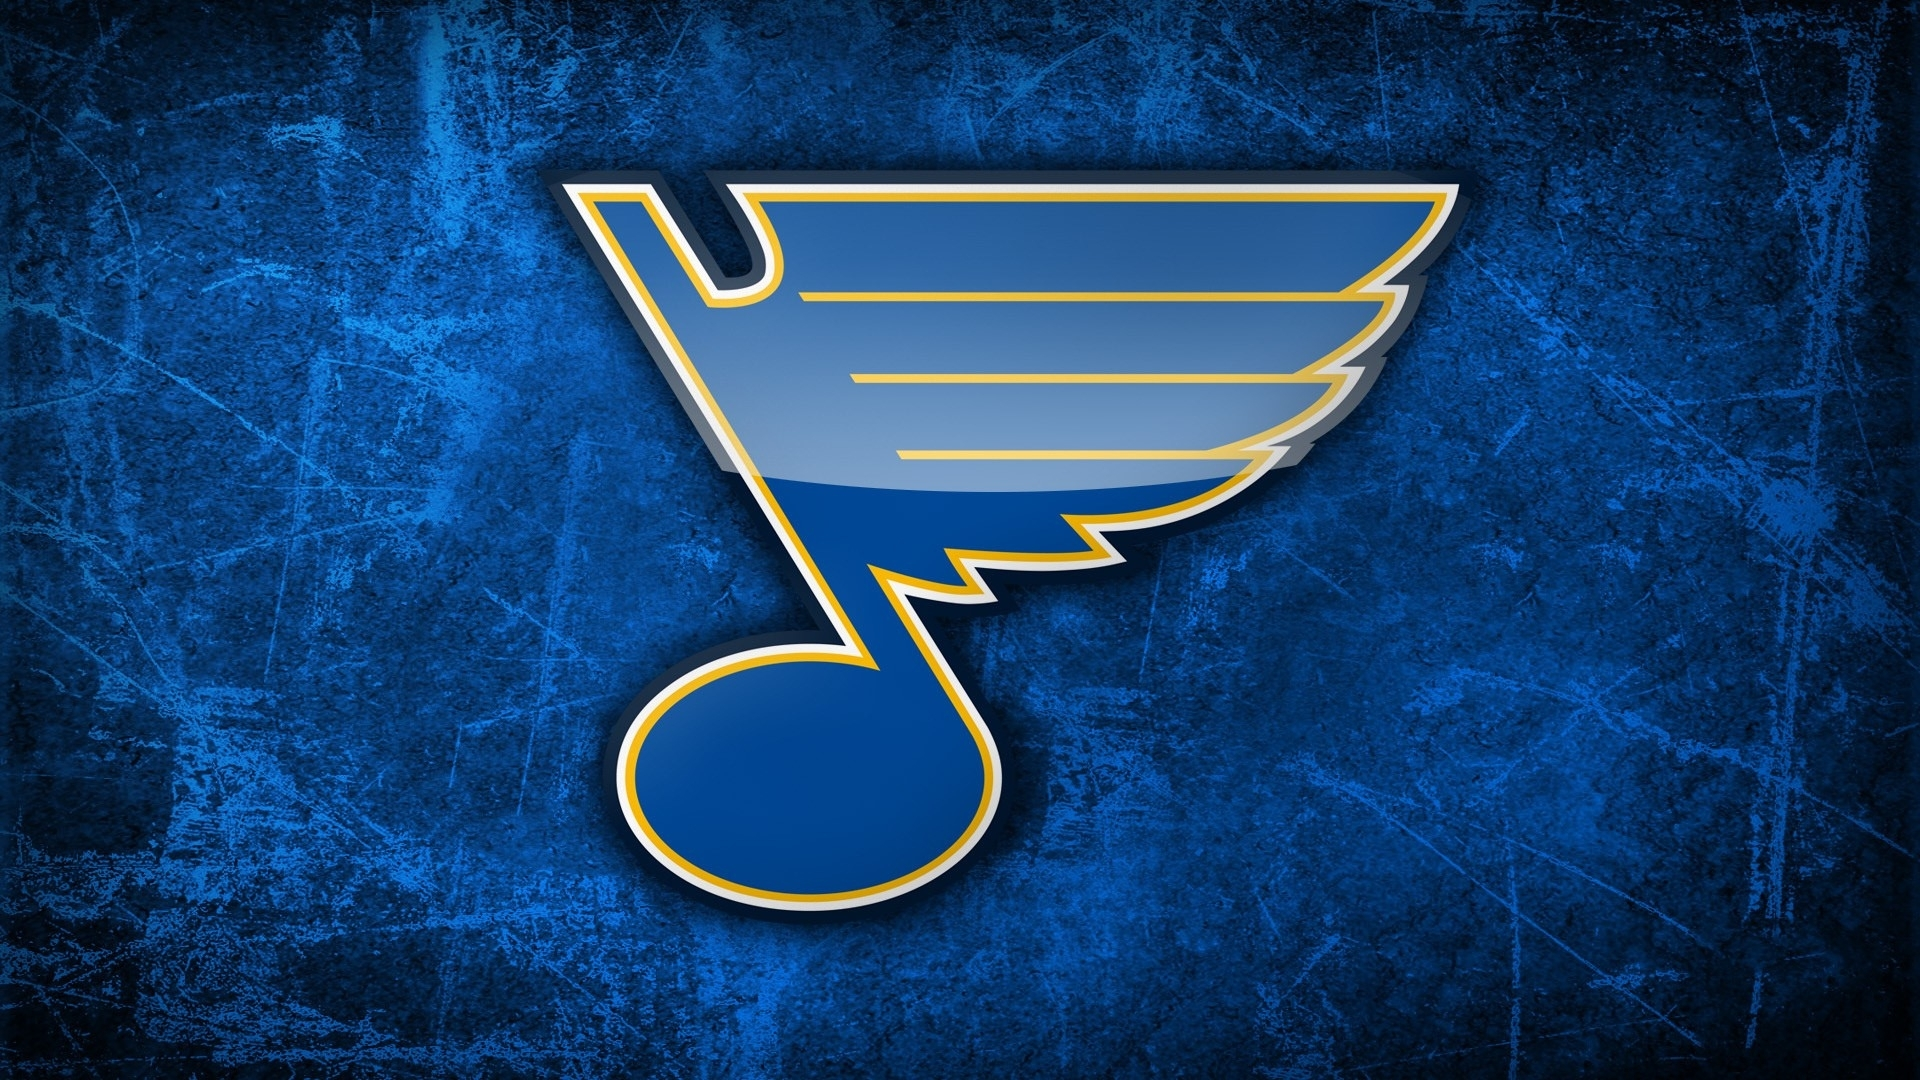 10 Latest St Louis Blues Desktop Wallpaper FULL HD 1920×1080 For PC Background